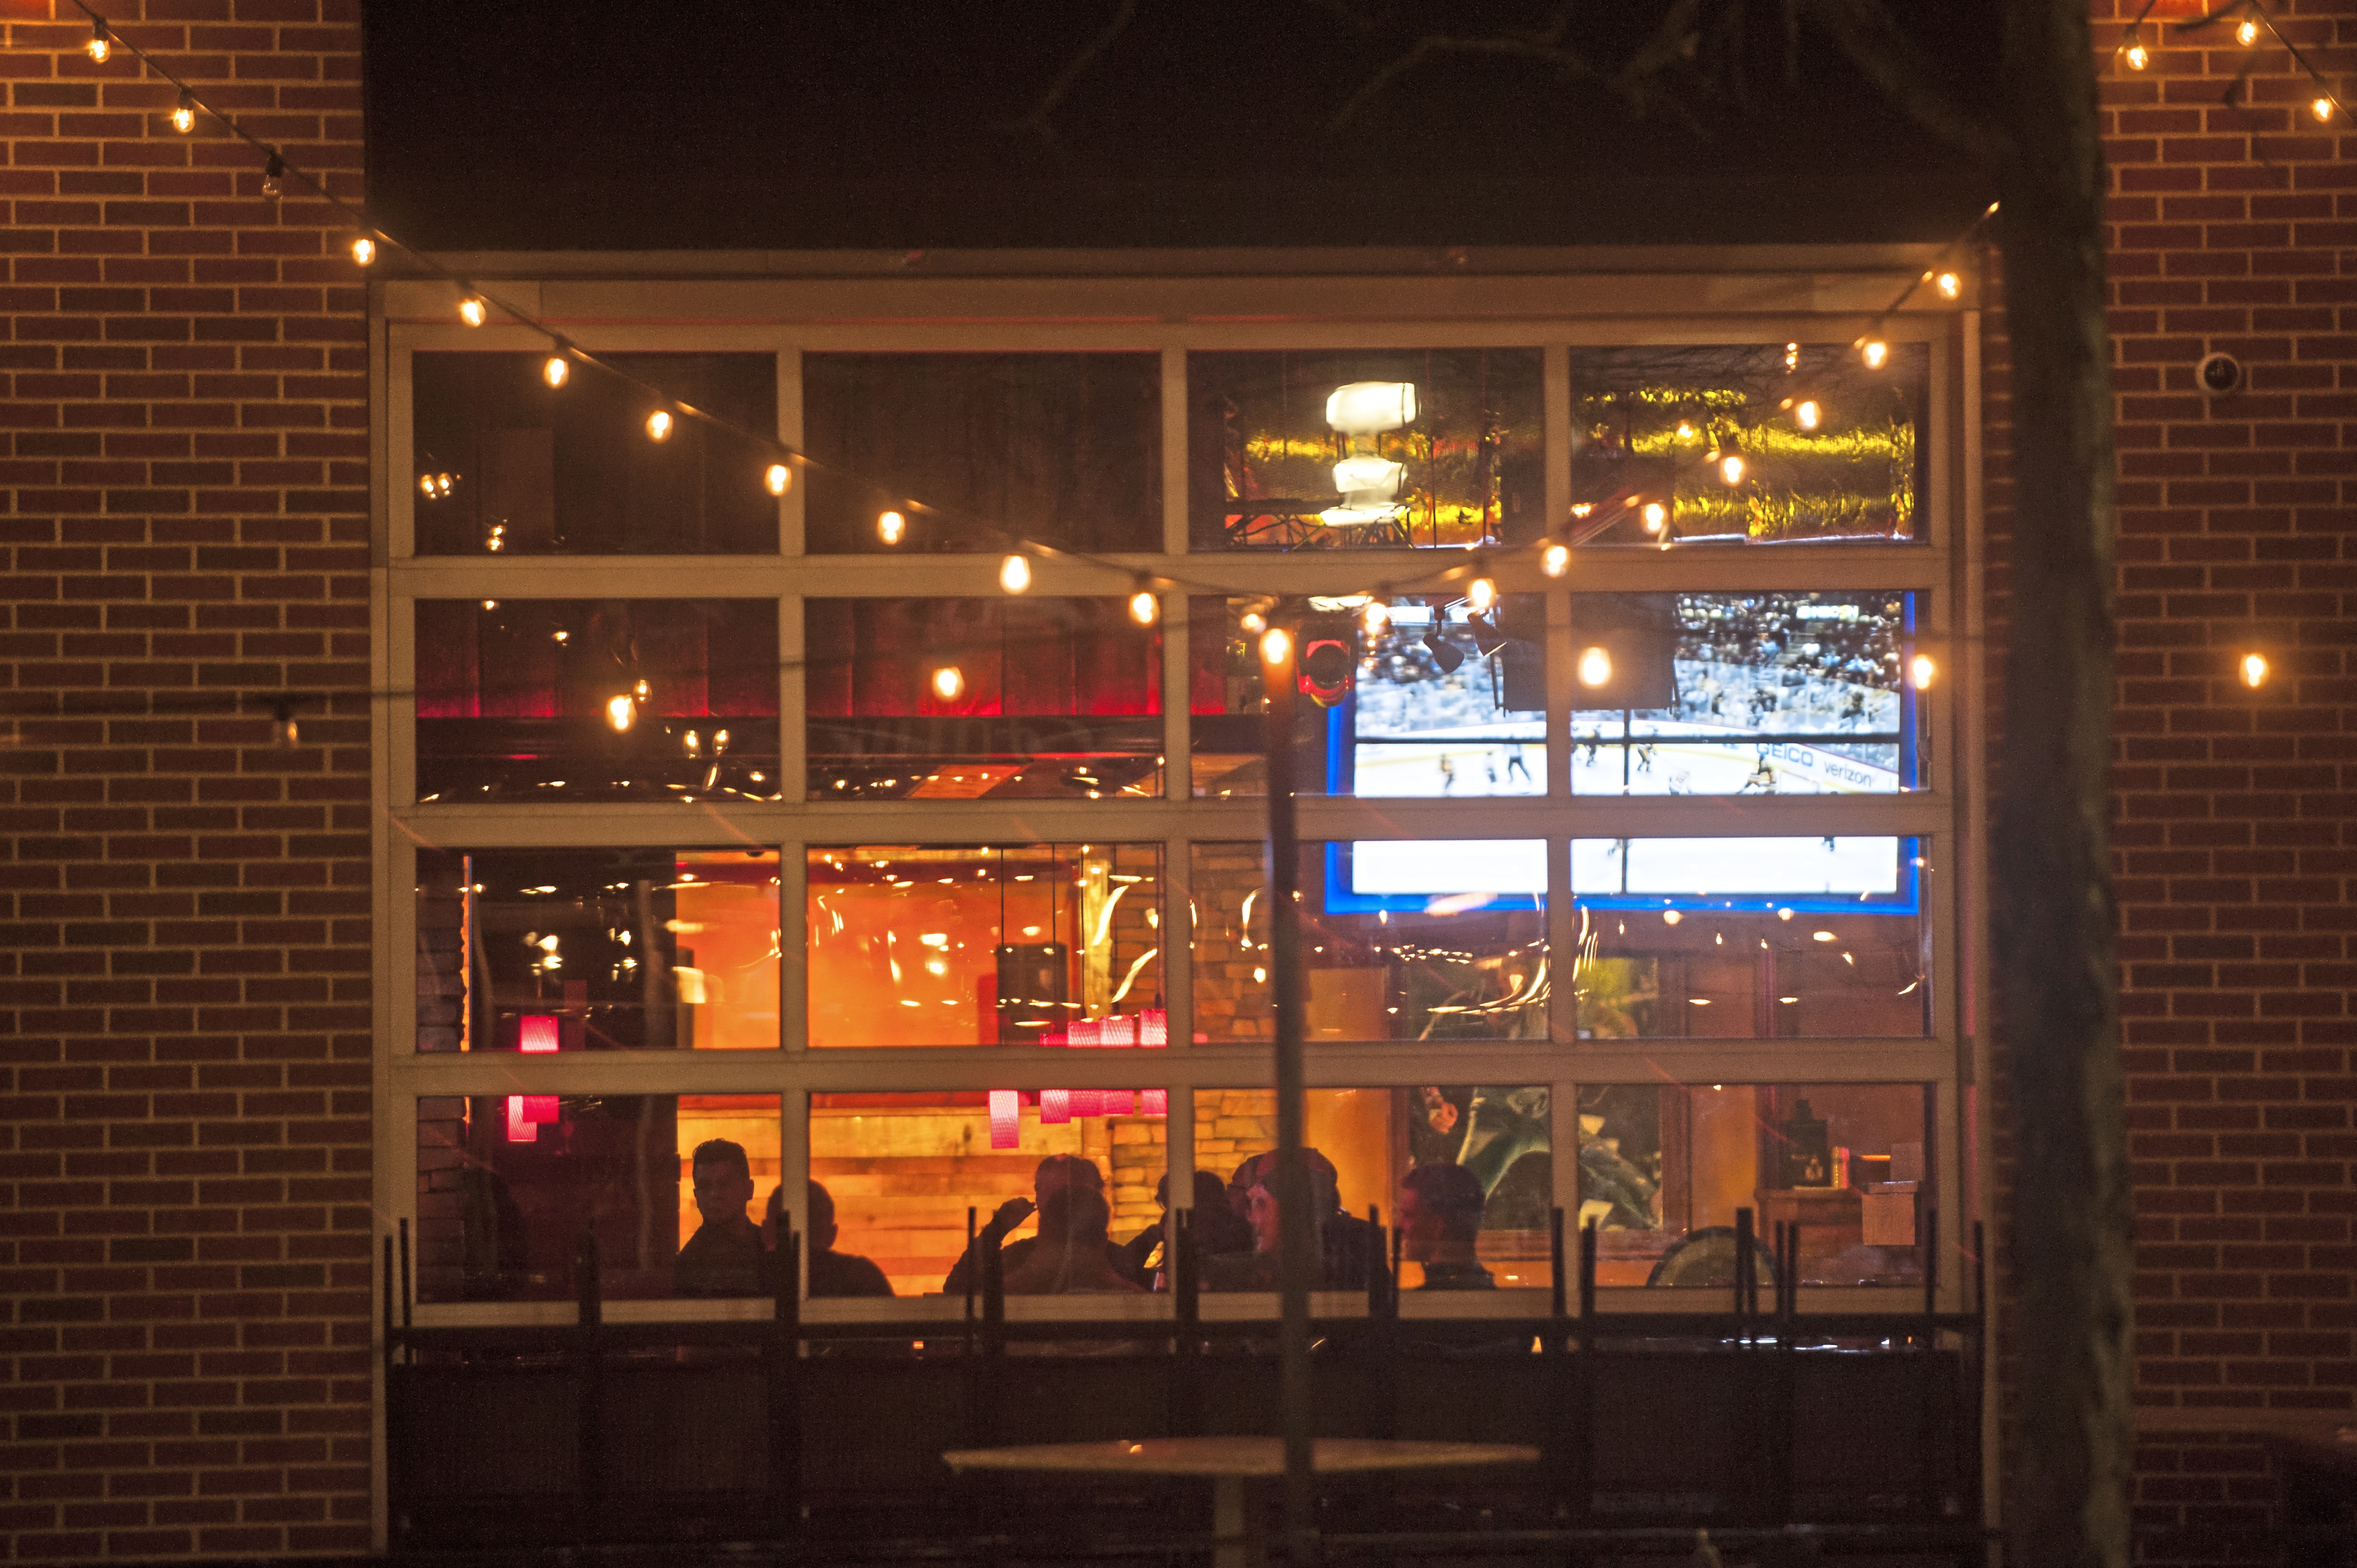 """20180107smsTequila04-3 Lights shine at the window of Tequila Cowboy on Sunday, Jan. 7, 2018 along the North Shore by Heinz Field. On New Years Eve, Steelers offensive coordinator Todd Haley injured his hip and was escorted out of the bar after his wife Christine Haley was in a """"minor scuffle"""" at the establishment."""